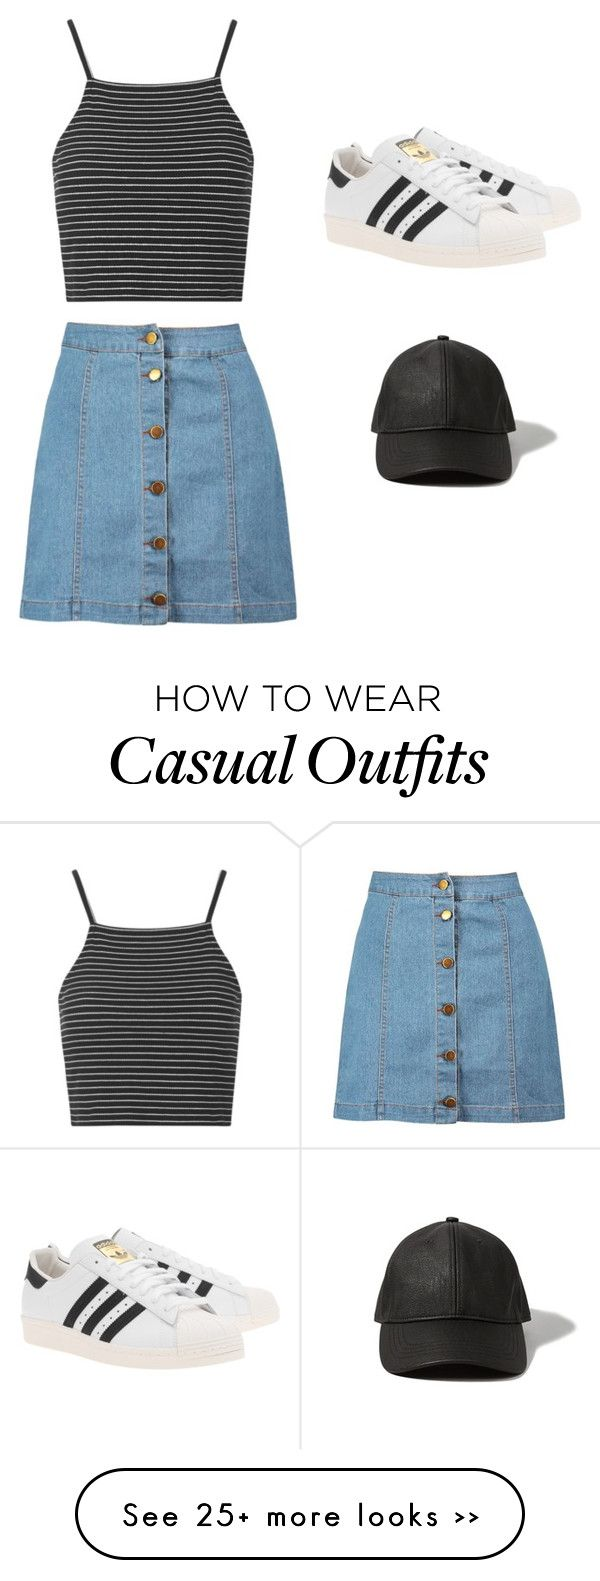 """Casual Sporty"" by kleebee123 on Polyvore featuring Boohoo, adidas Originals, Topshop and Abercrombie & Fitch"